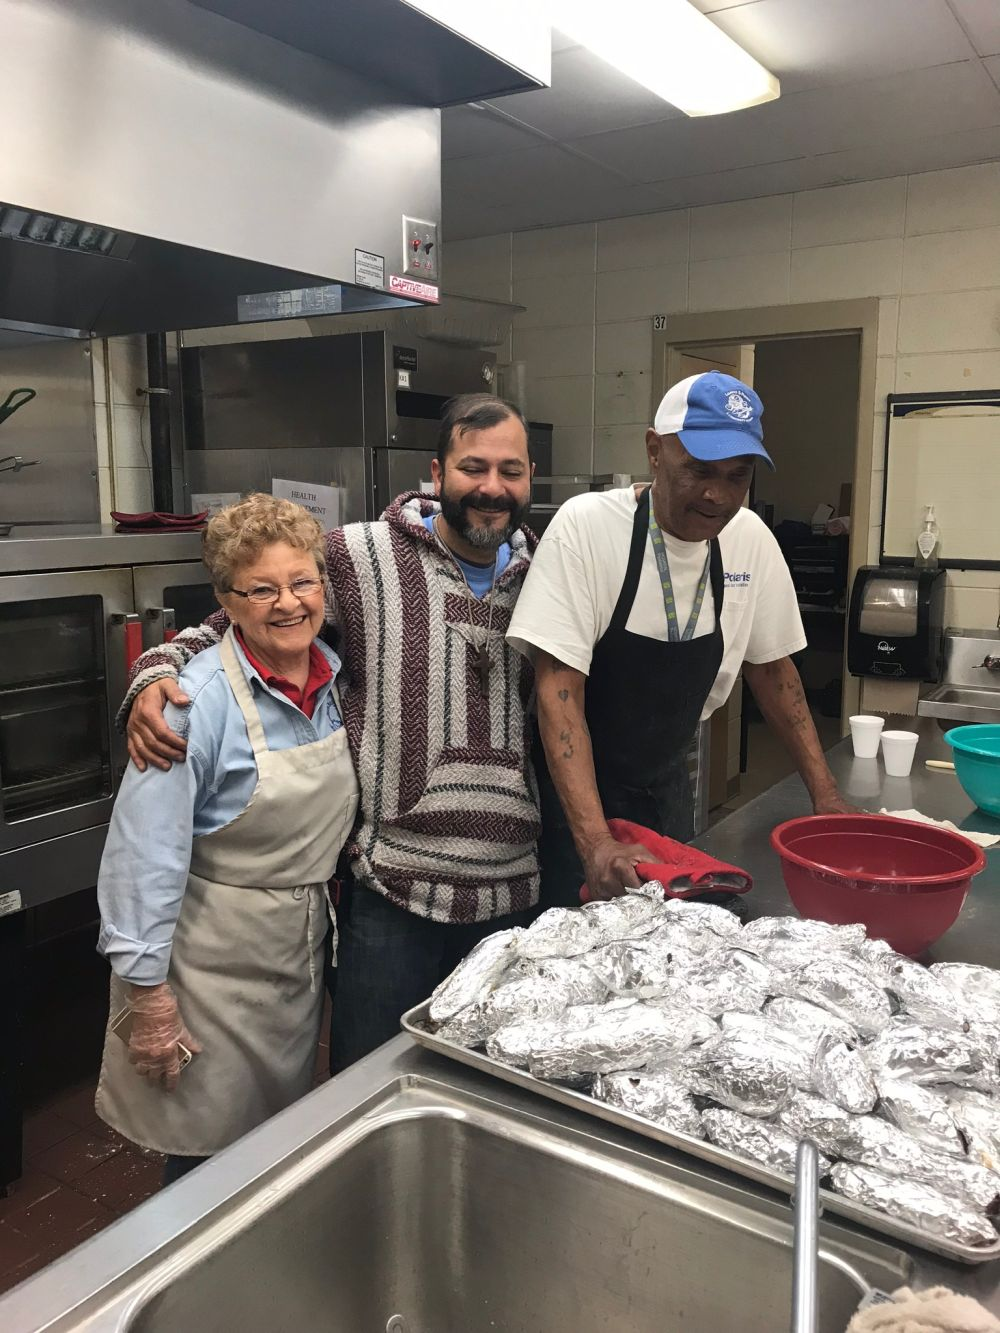 Mission Trip 2019 - 6 of 14